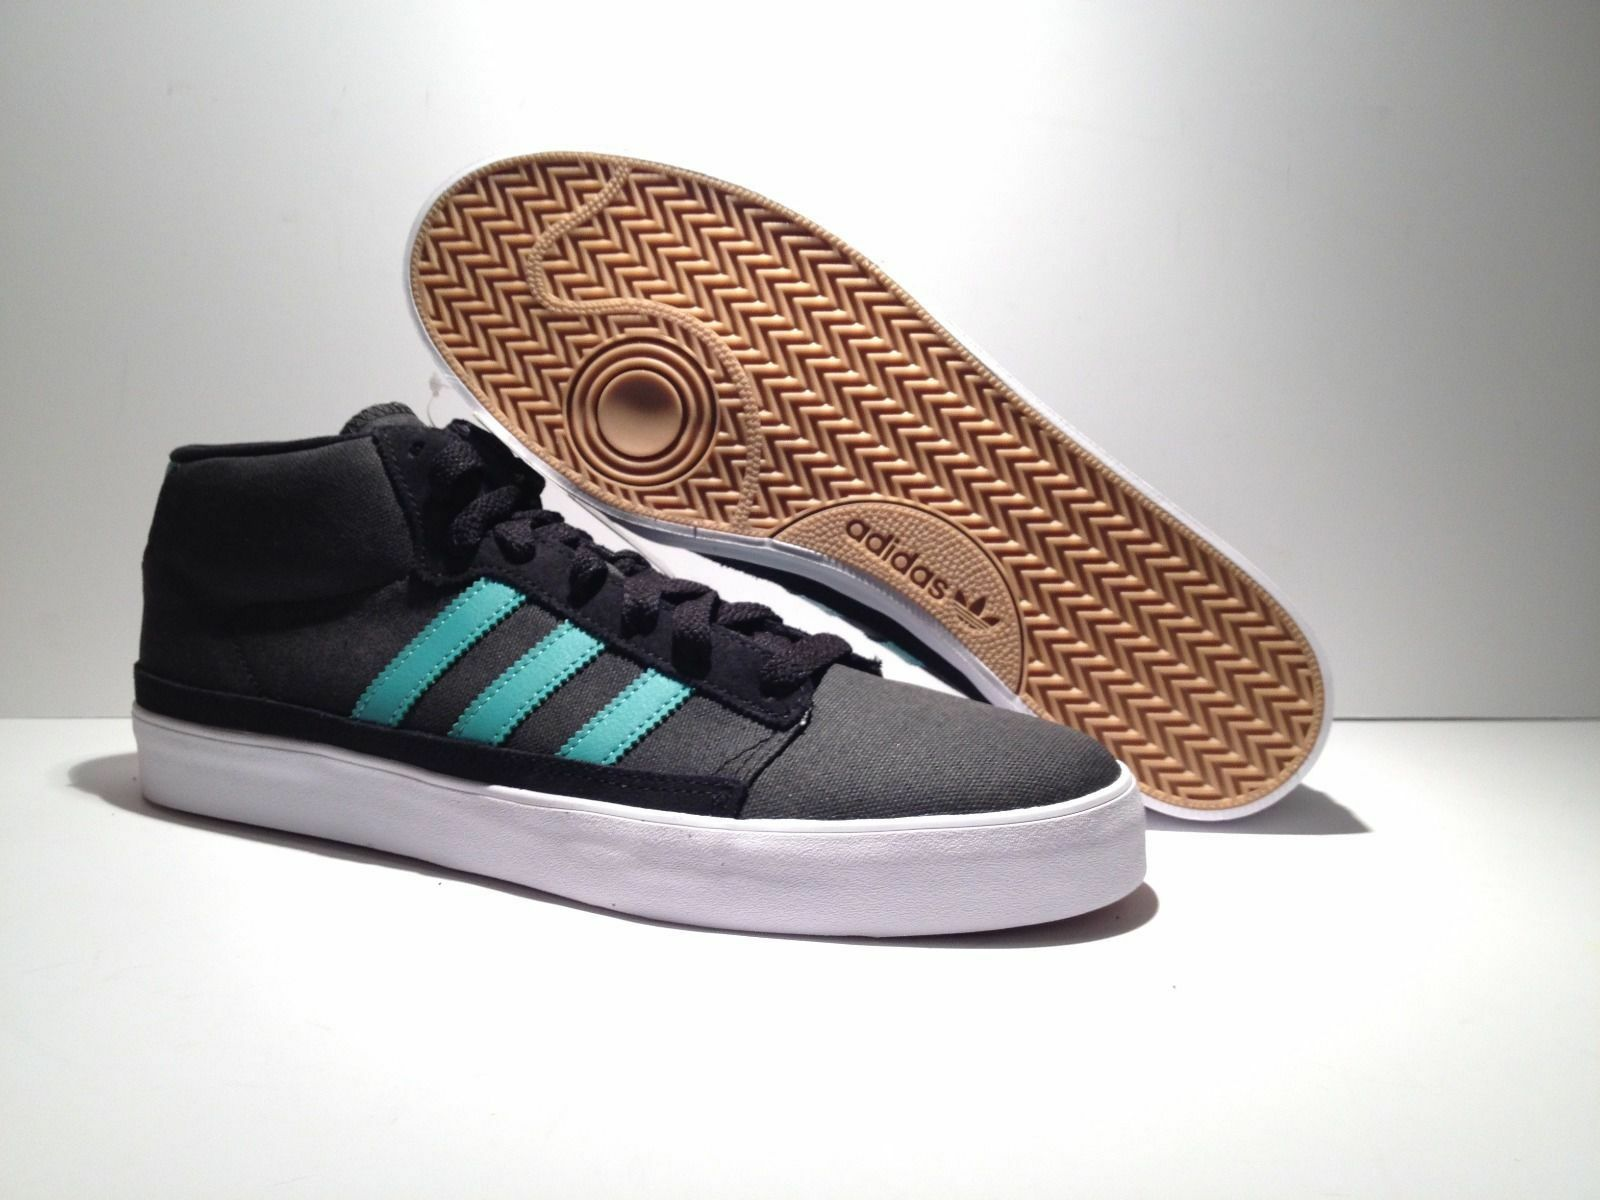 Adidas Originals Rayado Mid Men's Skate Shoes size 10 best-selling model of the brand